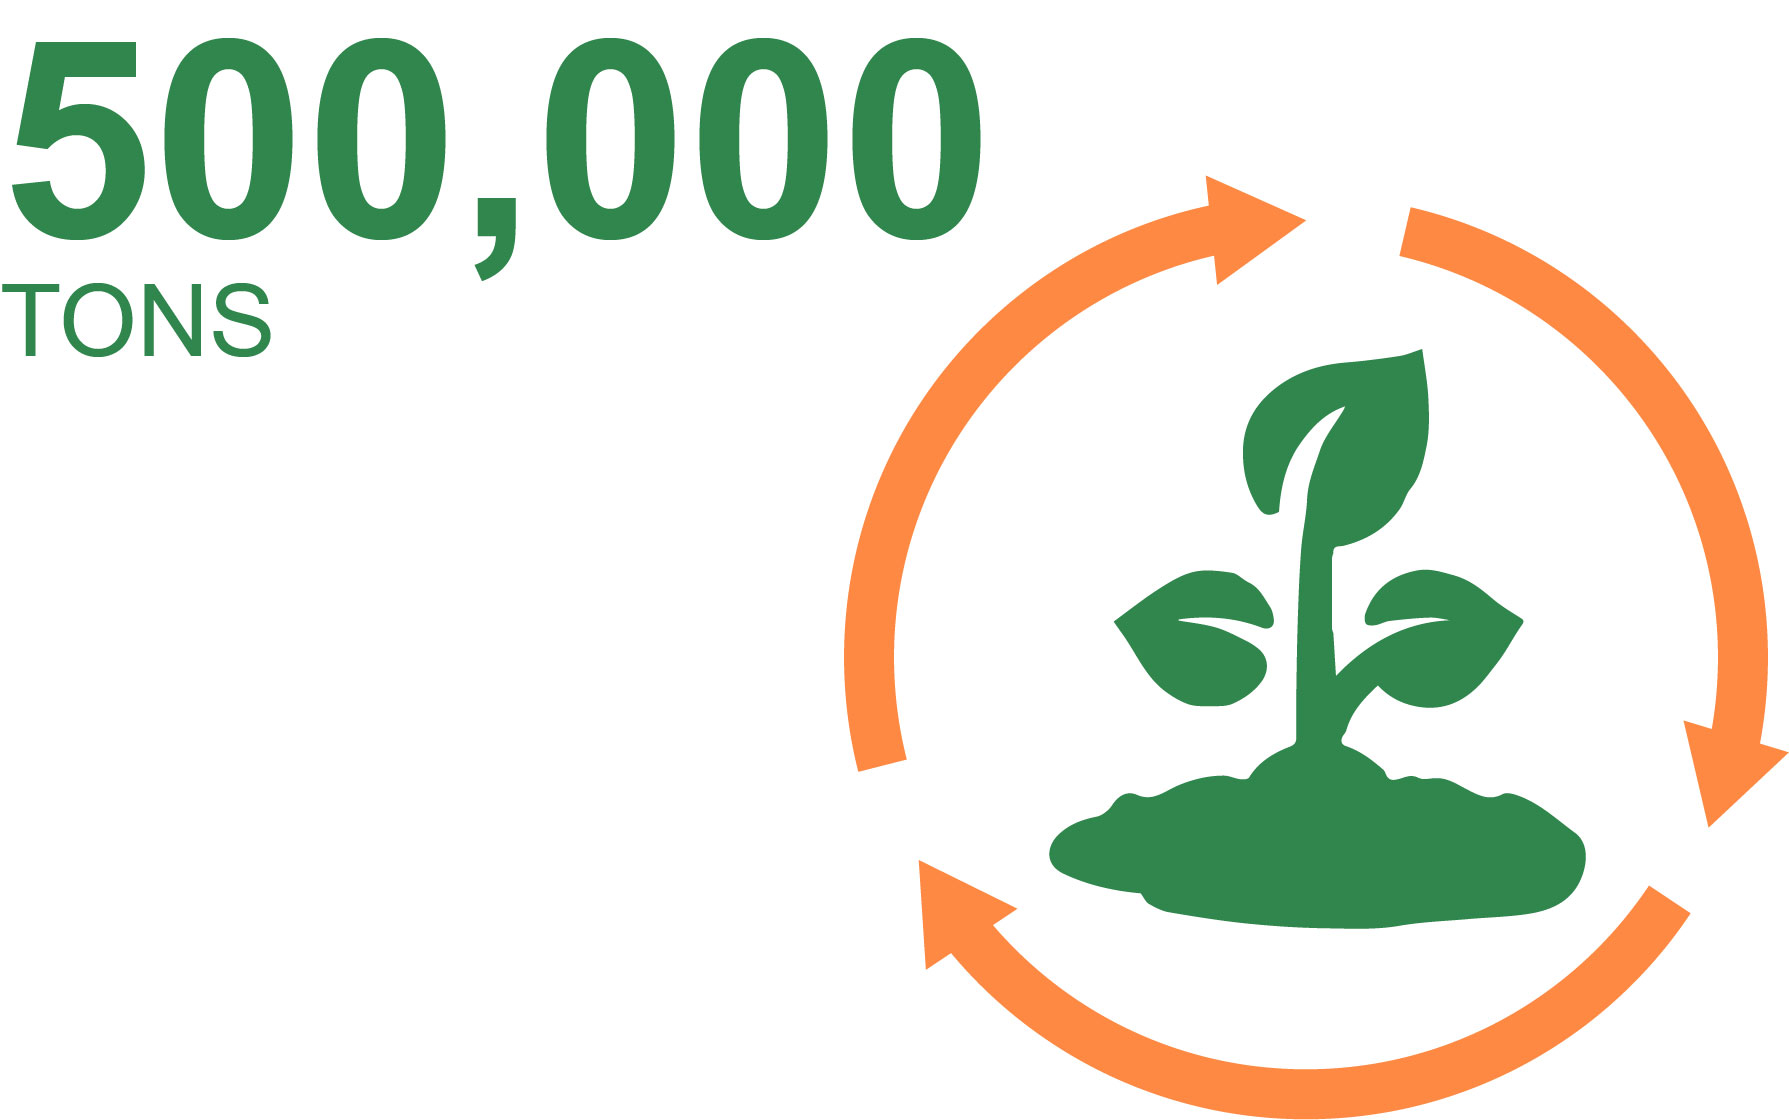 475,000 tons of soil recycled